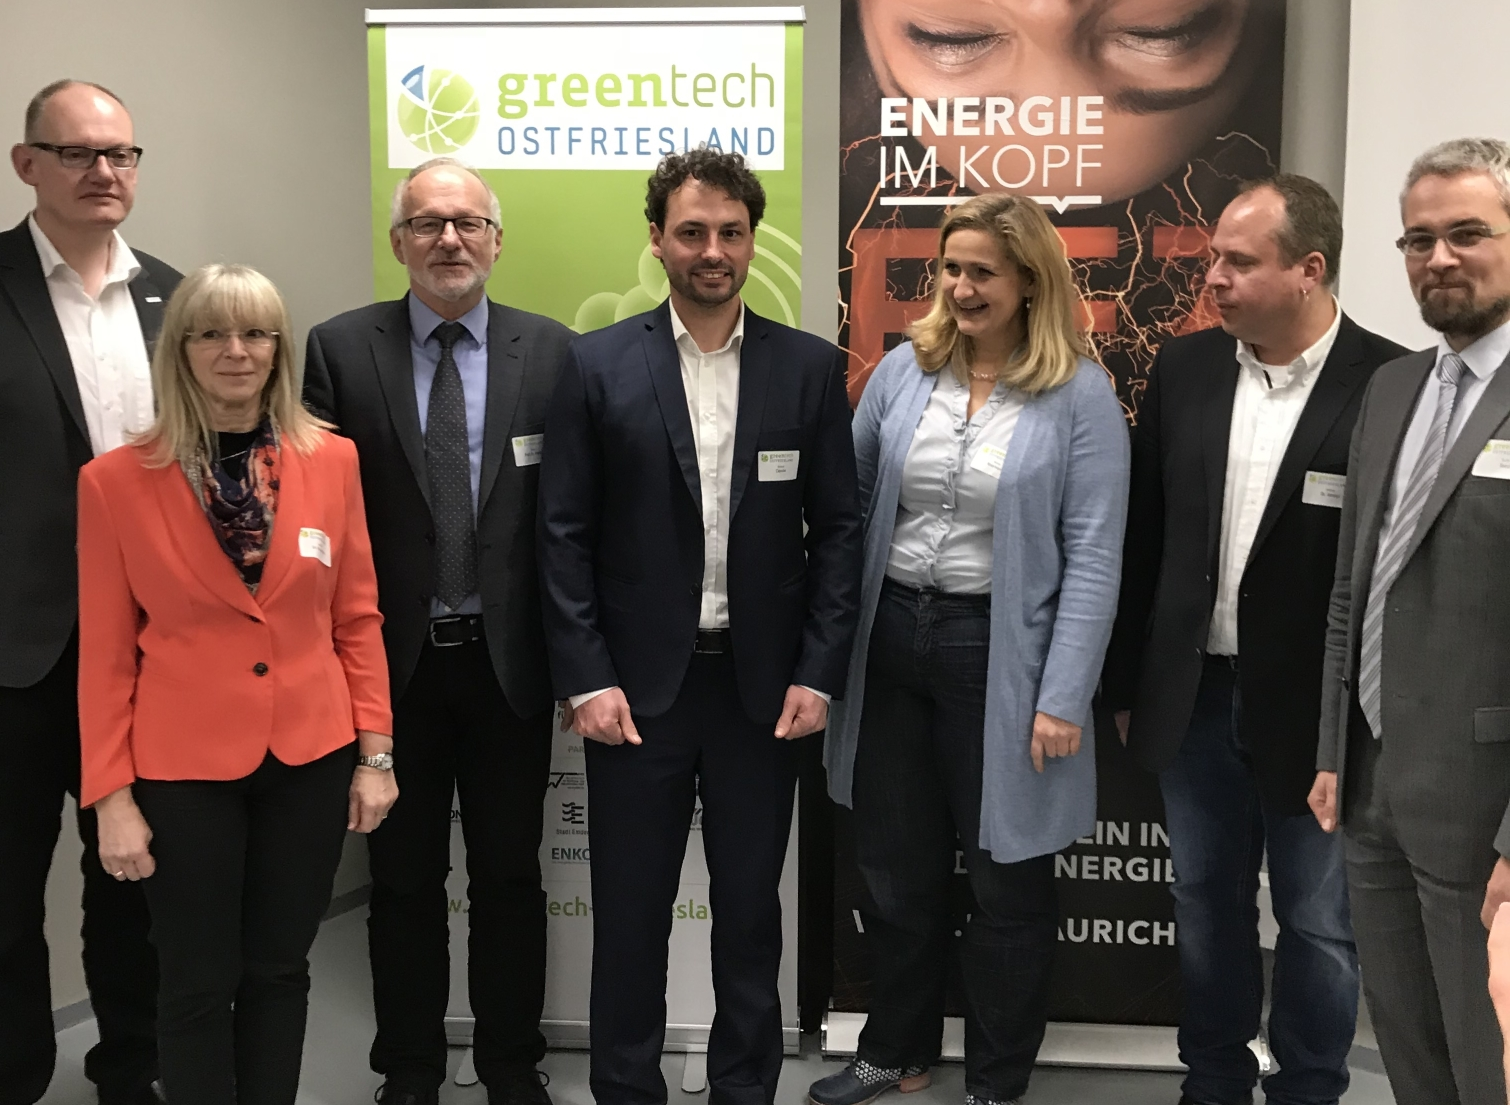 2017 12 08 greentech Forum 28.11.17 komprimiert